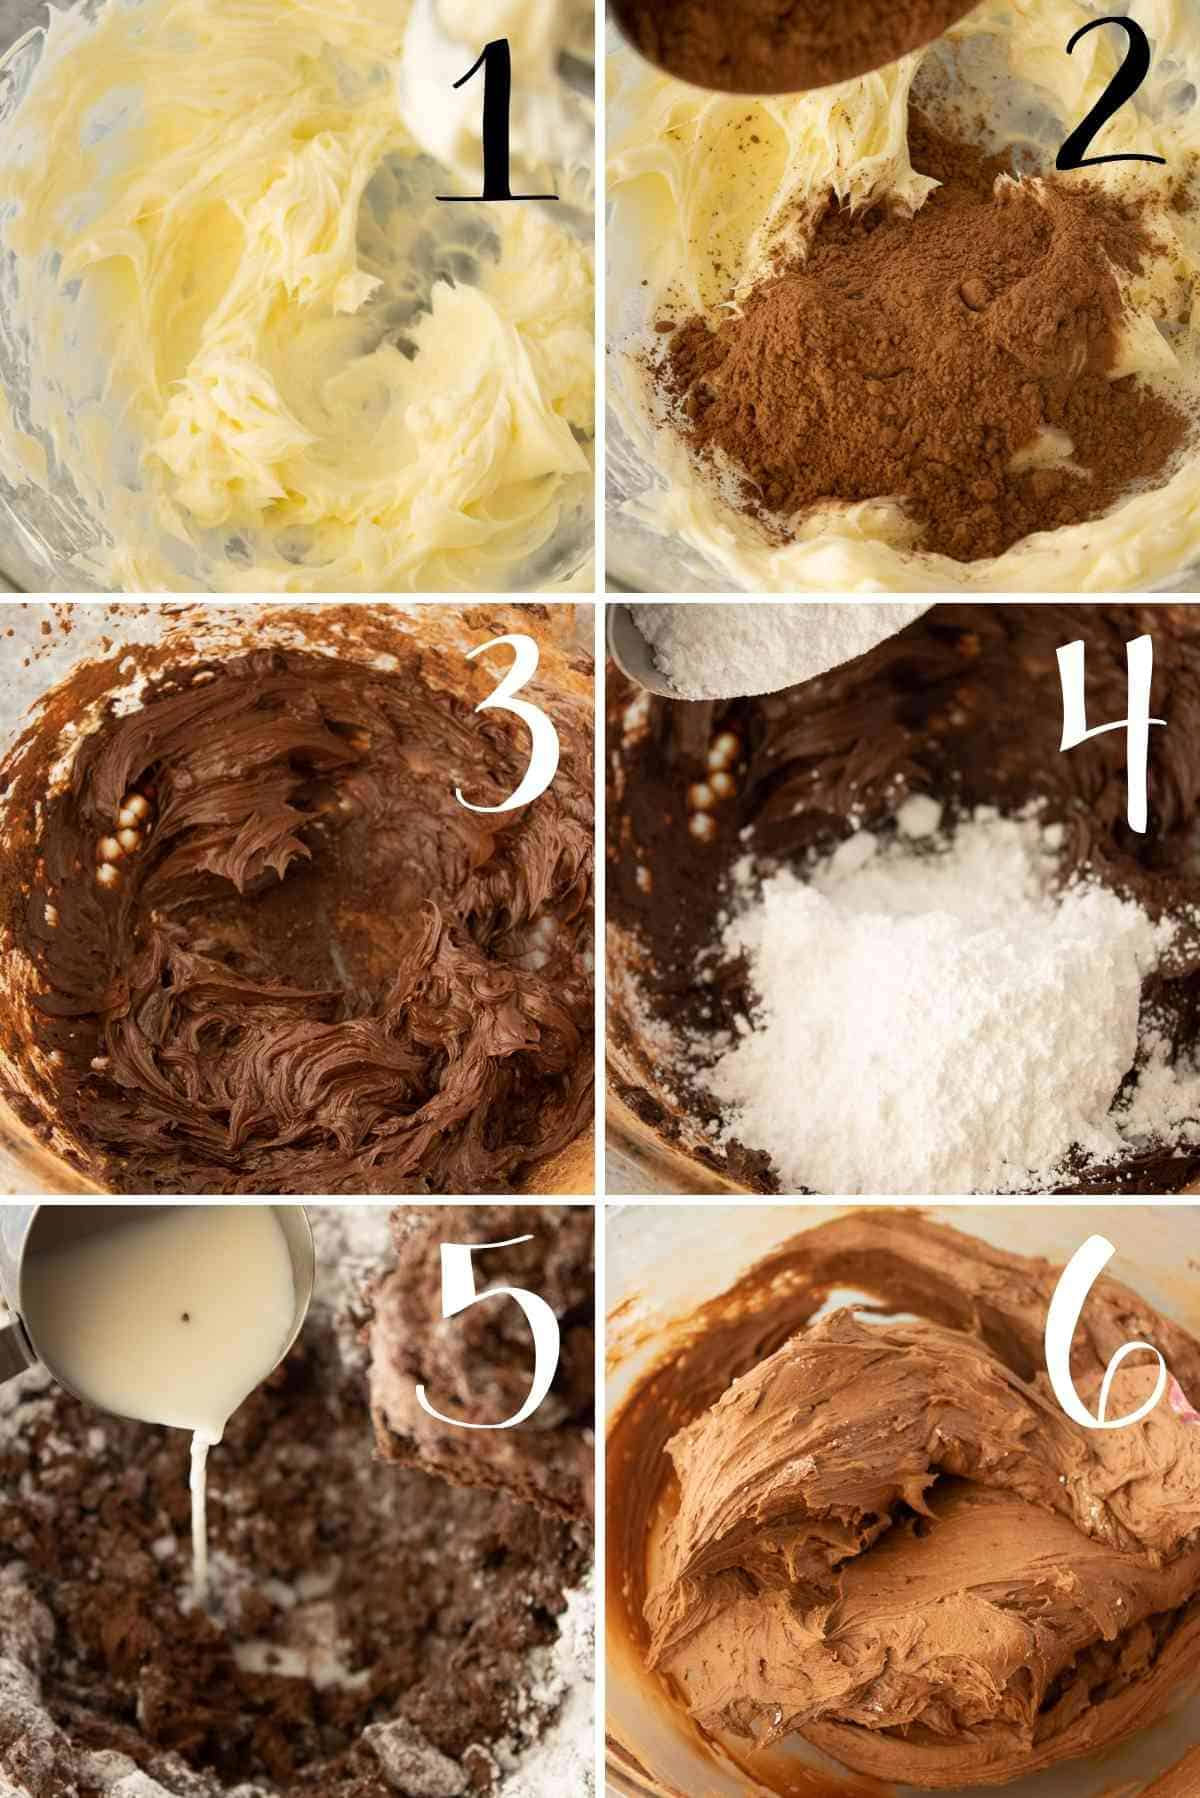 Step by step photos to make chocolate buttercream frosting.